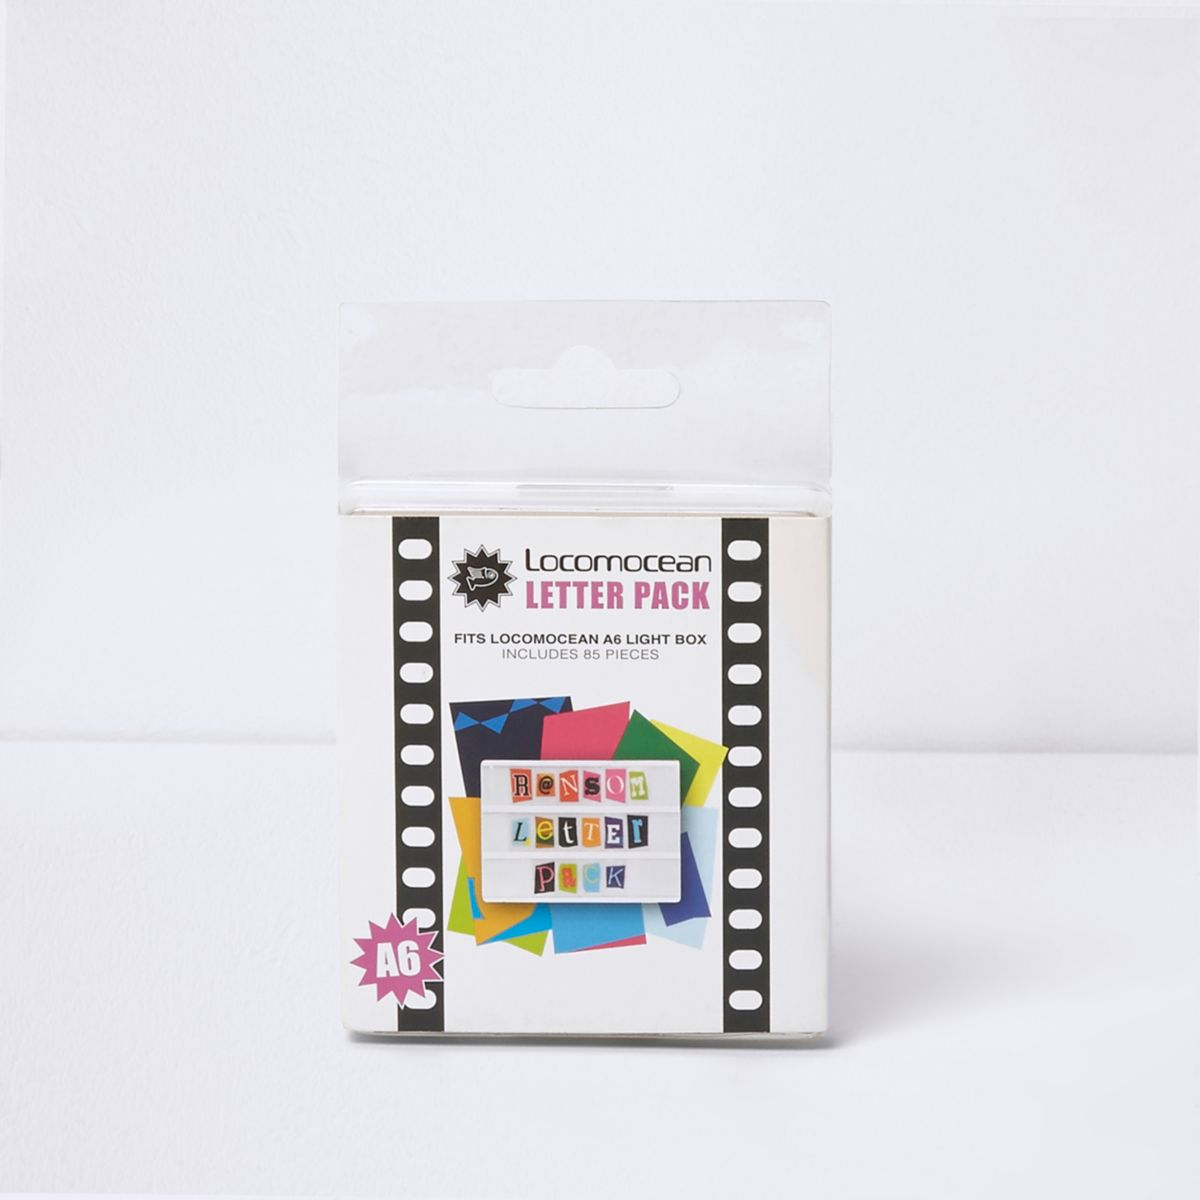 Light box ransom style letters pack